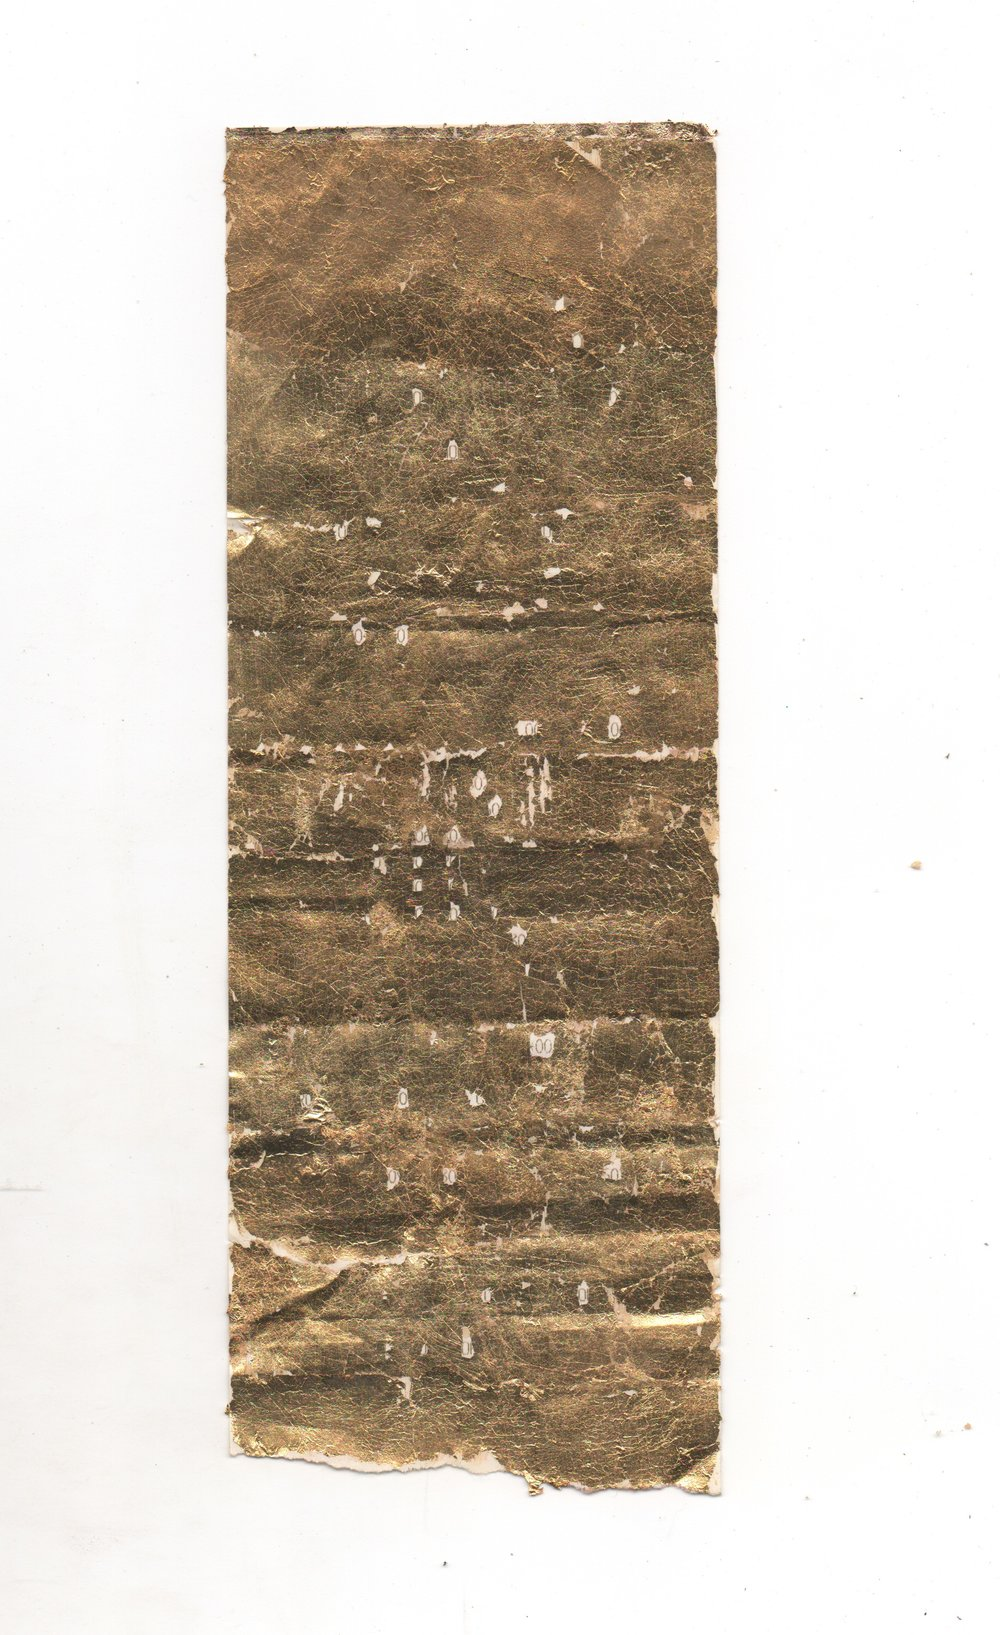 "Raoul Pacheco $33.93 gilded receipt 8.5"" x 3"" unframed"